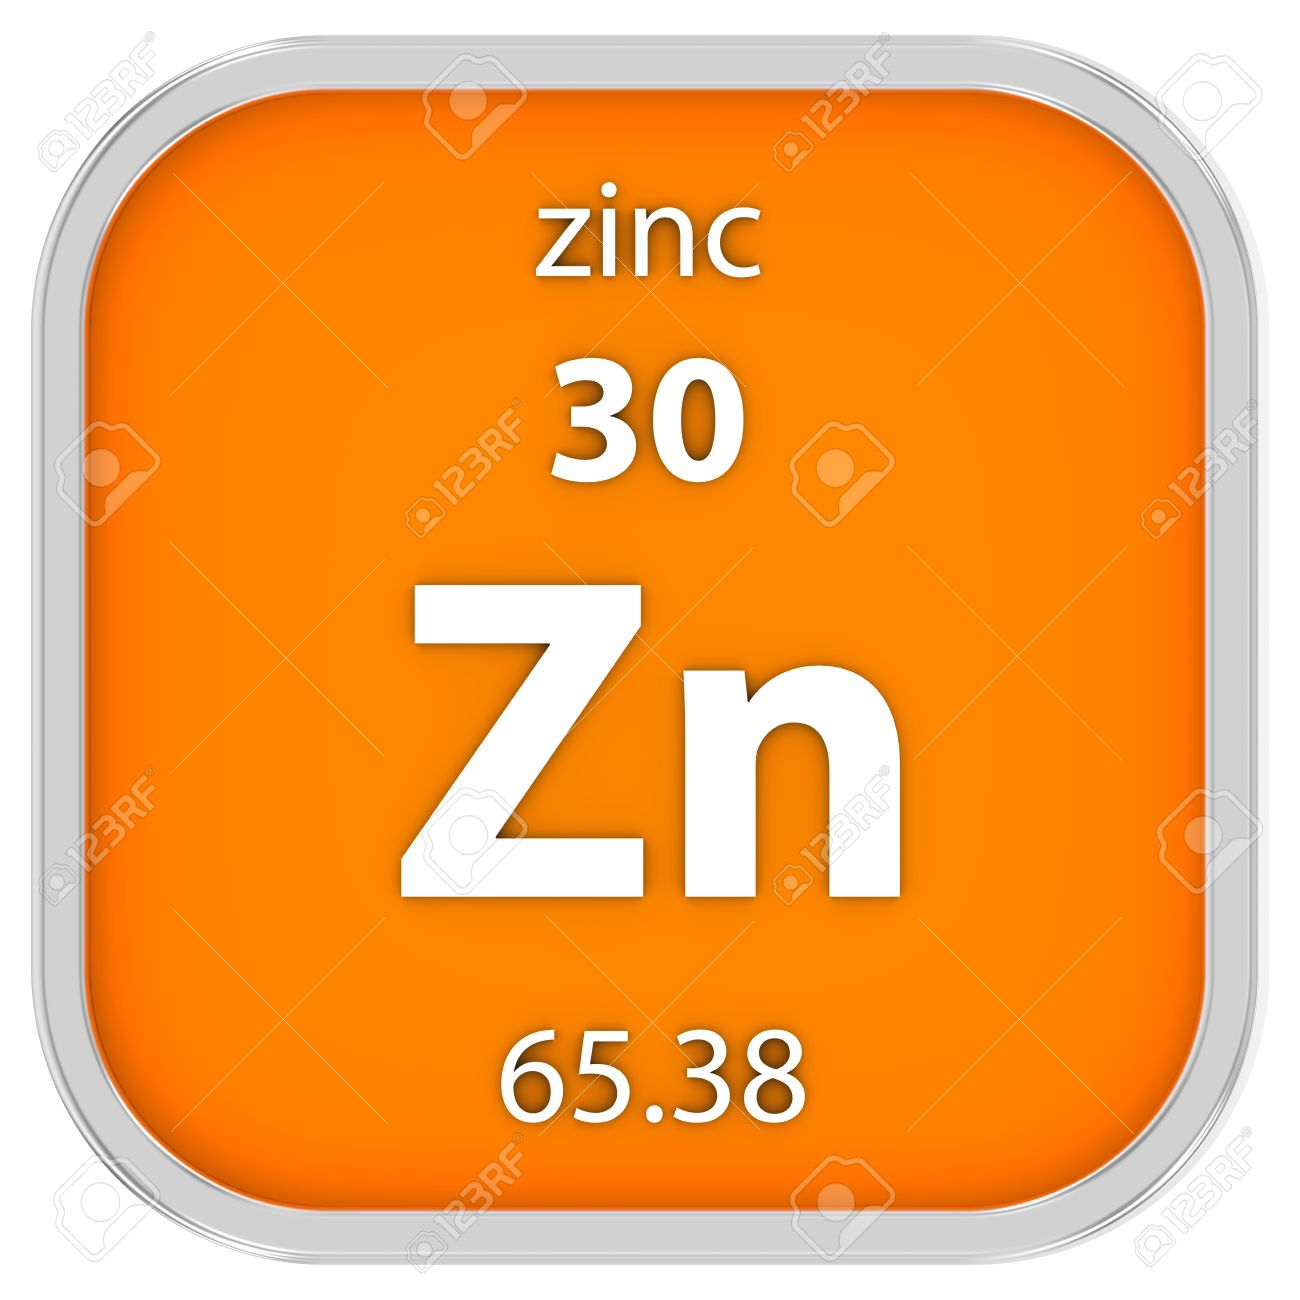 Zinc material on the periodic table part of a series stock photo zinc material on the periodic table part of a series stock photo 39444470 urtaz Images